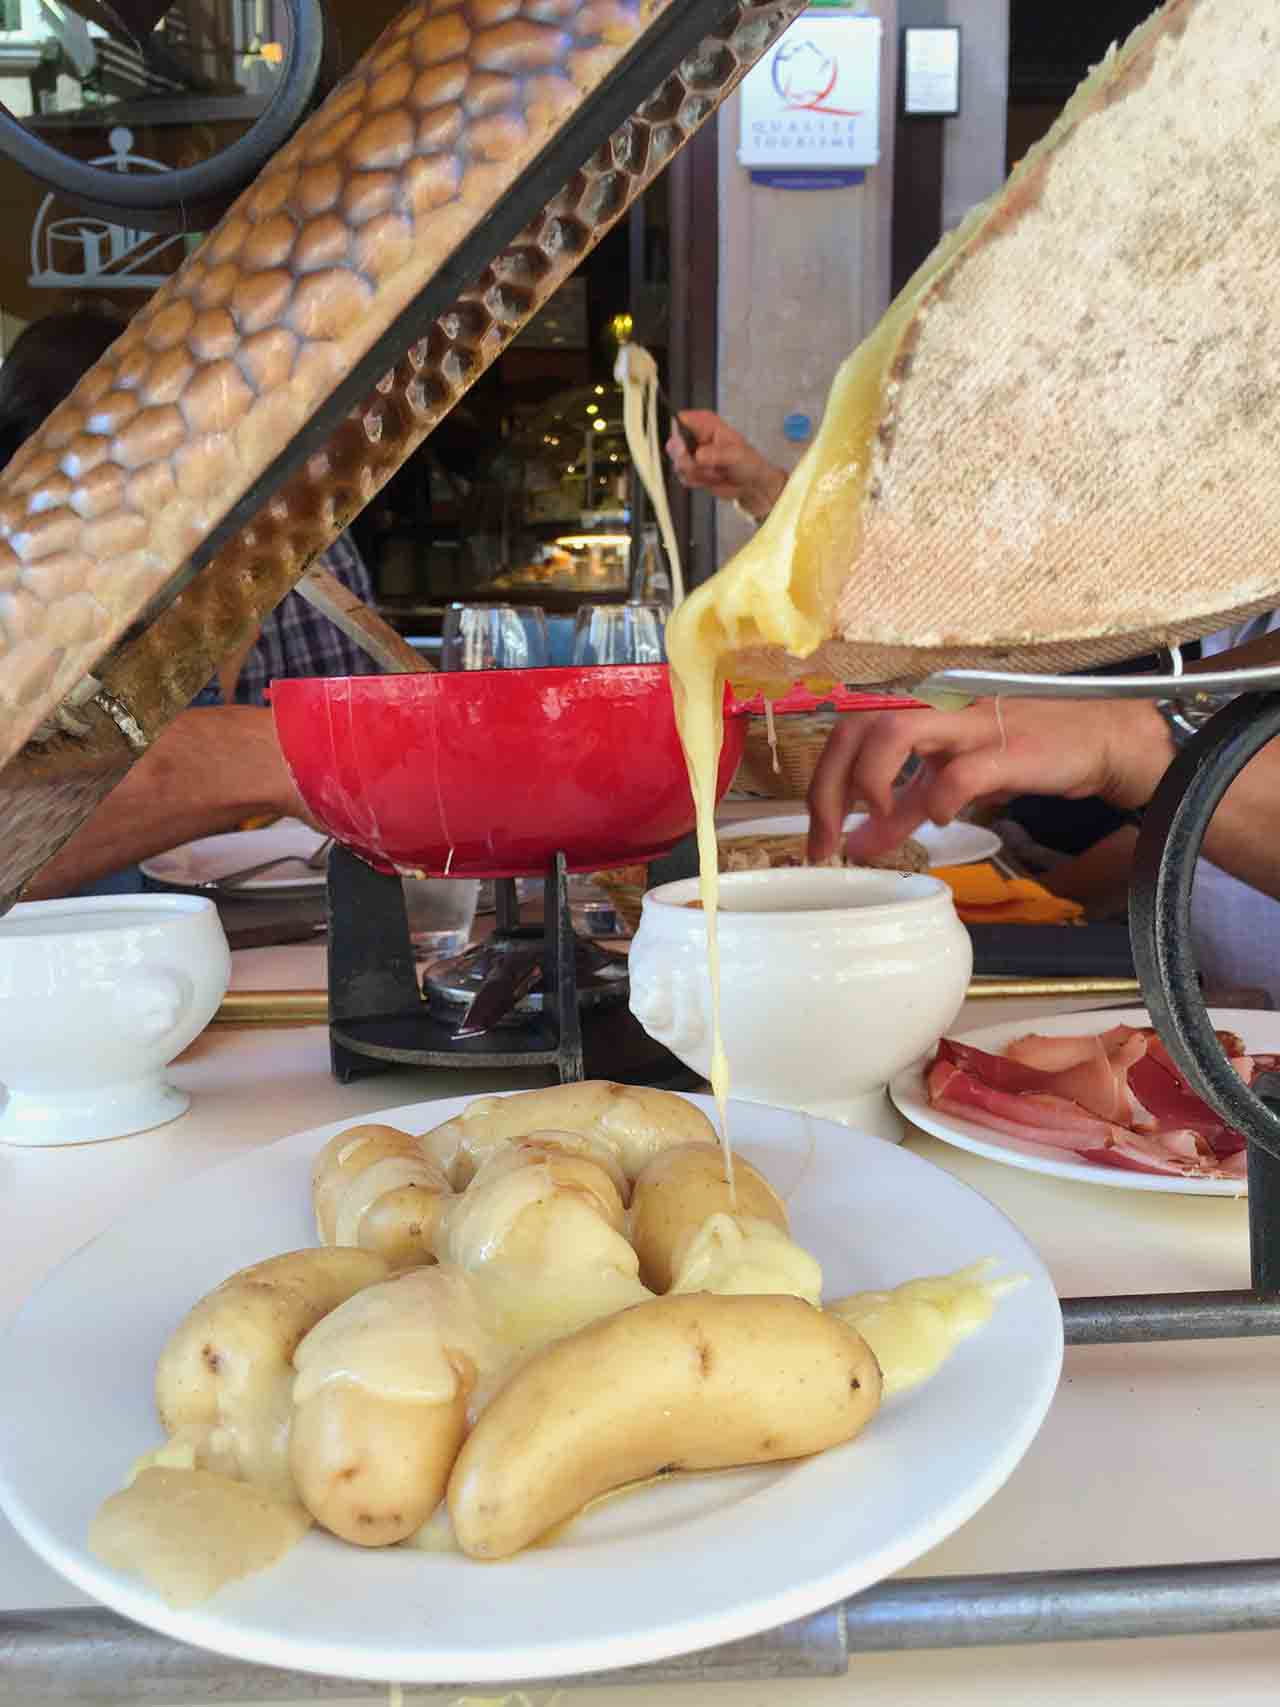 In Strasbourg we had a near ridiculous parade of cheeses.  I loved how dramatic this melted raclette from La Cloche à Fromage felt, especially paired with unpretentious boiled potatoes.